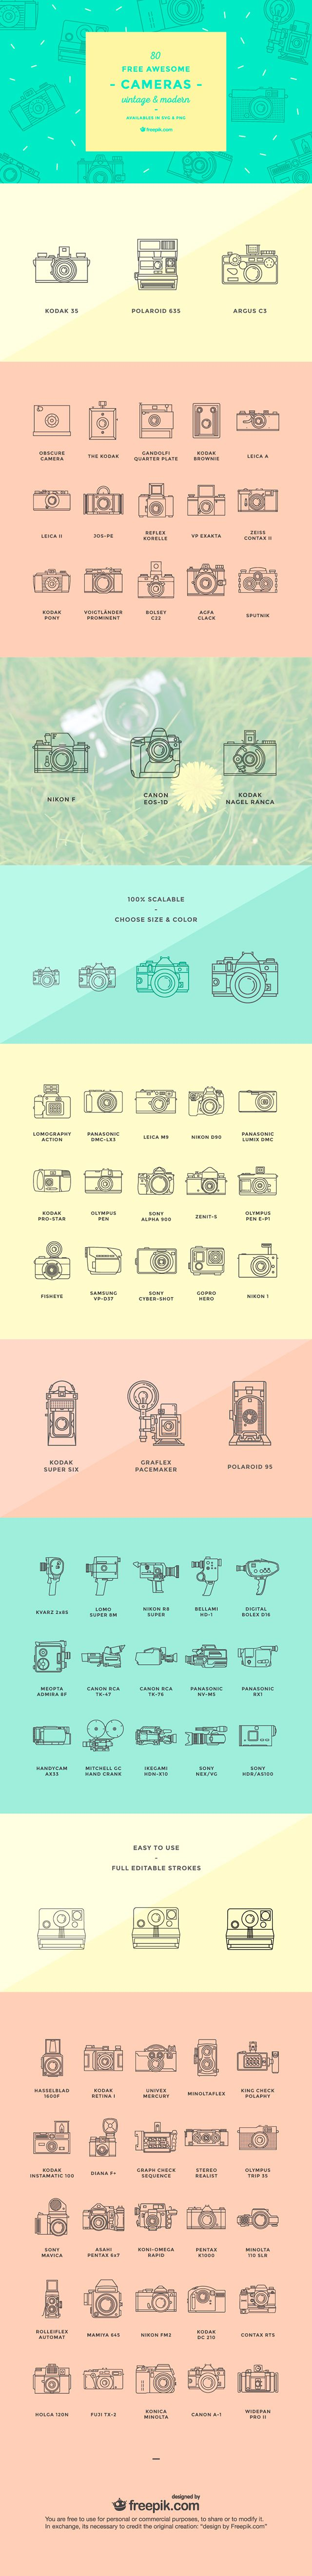 free awesome modern and vintage camera vector icons uiux